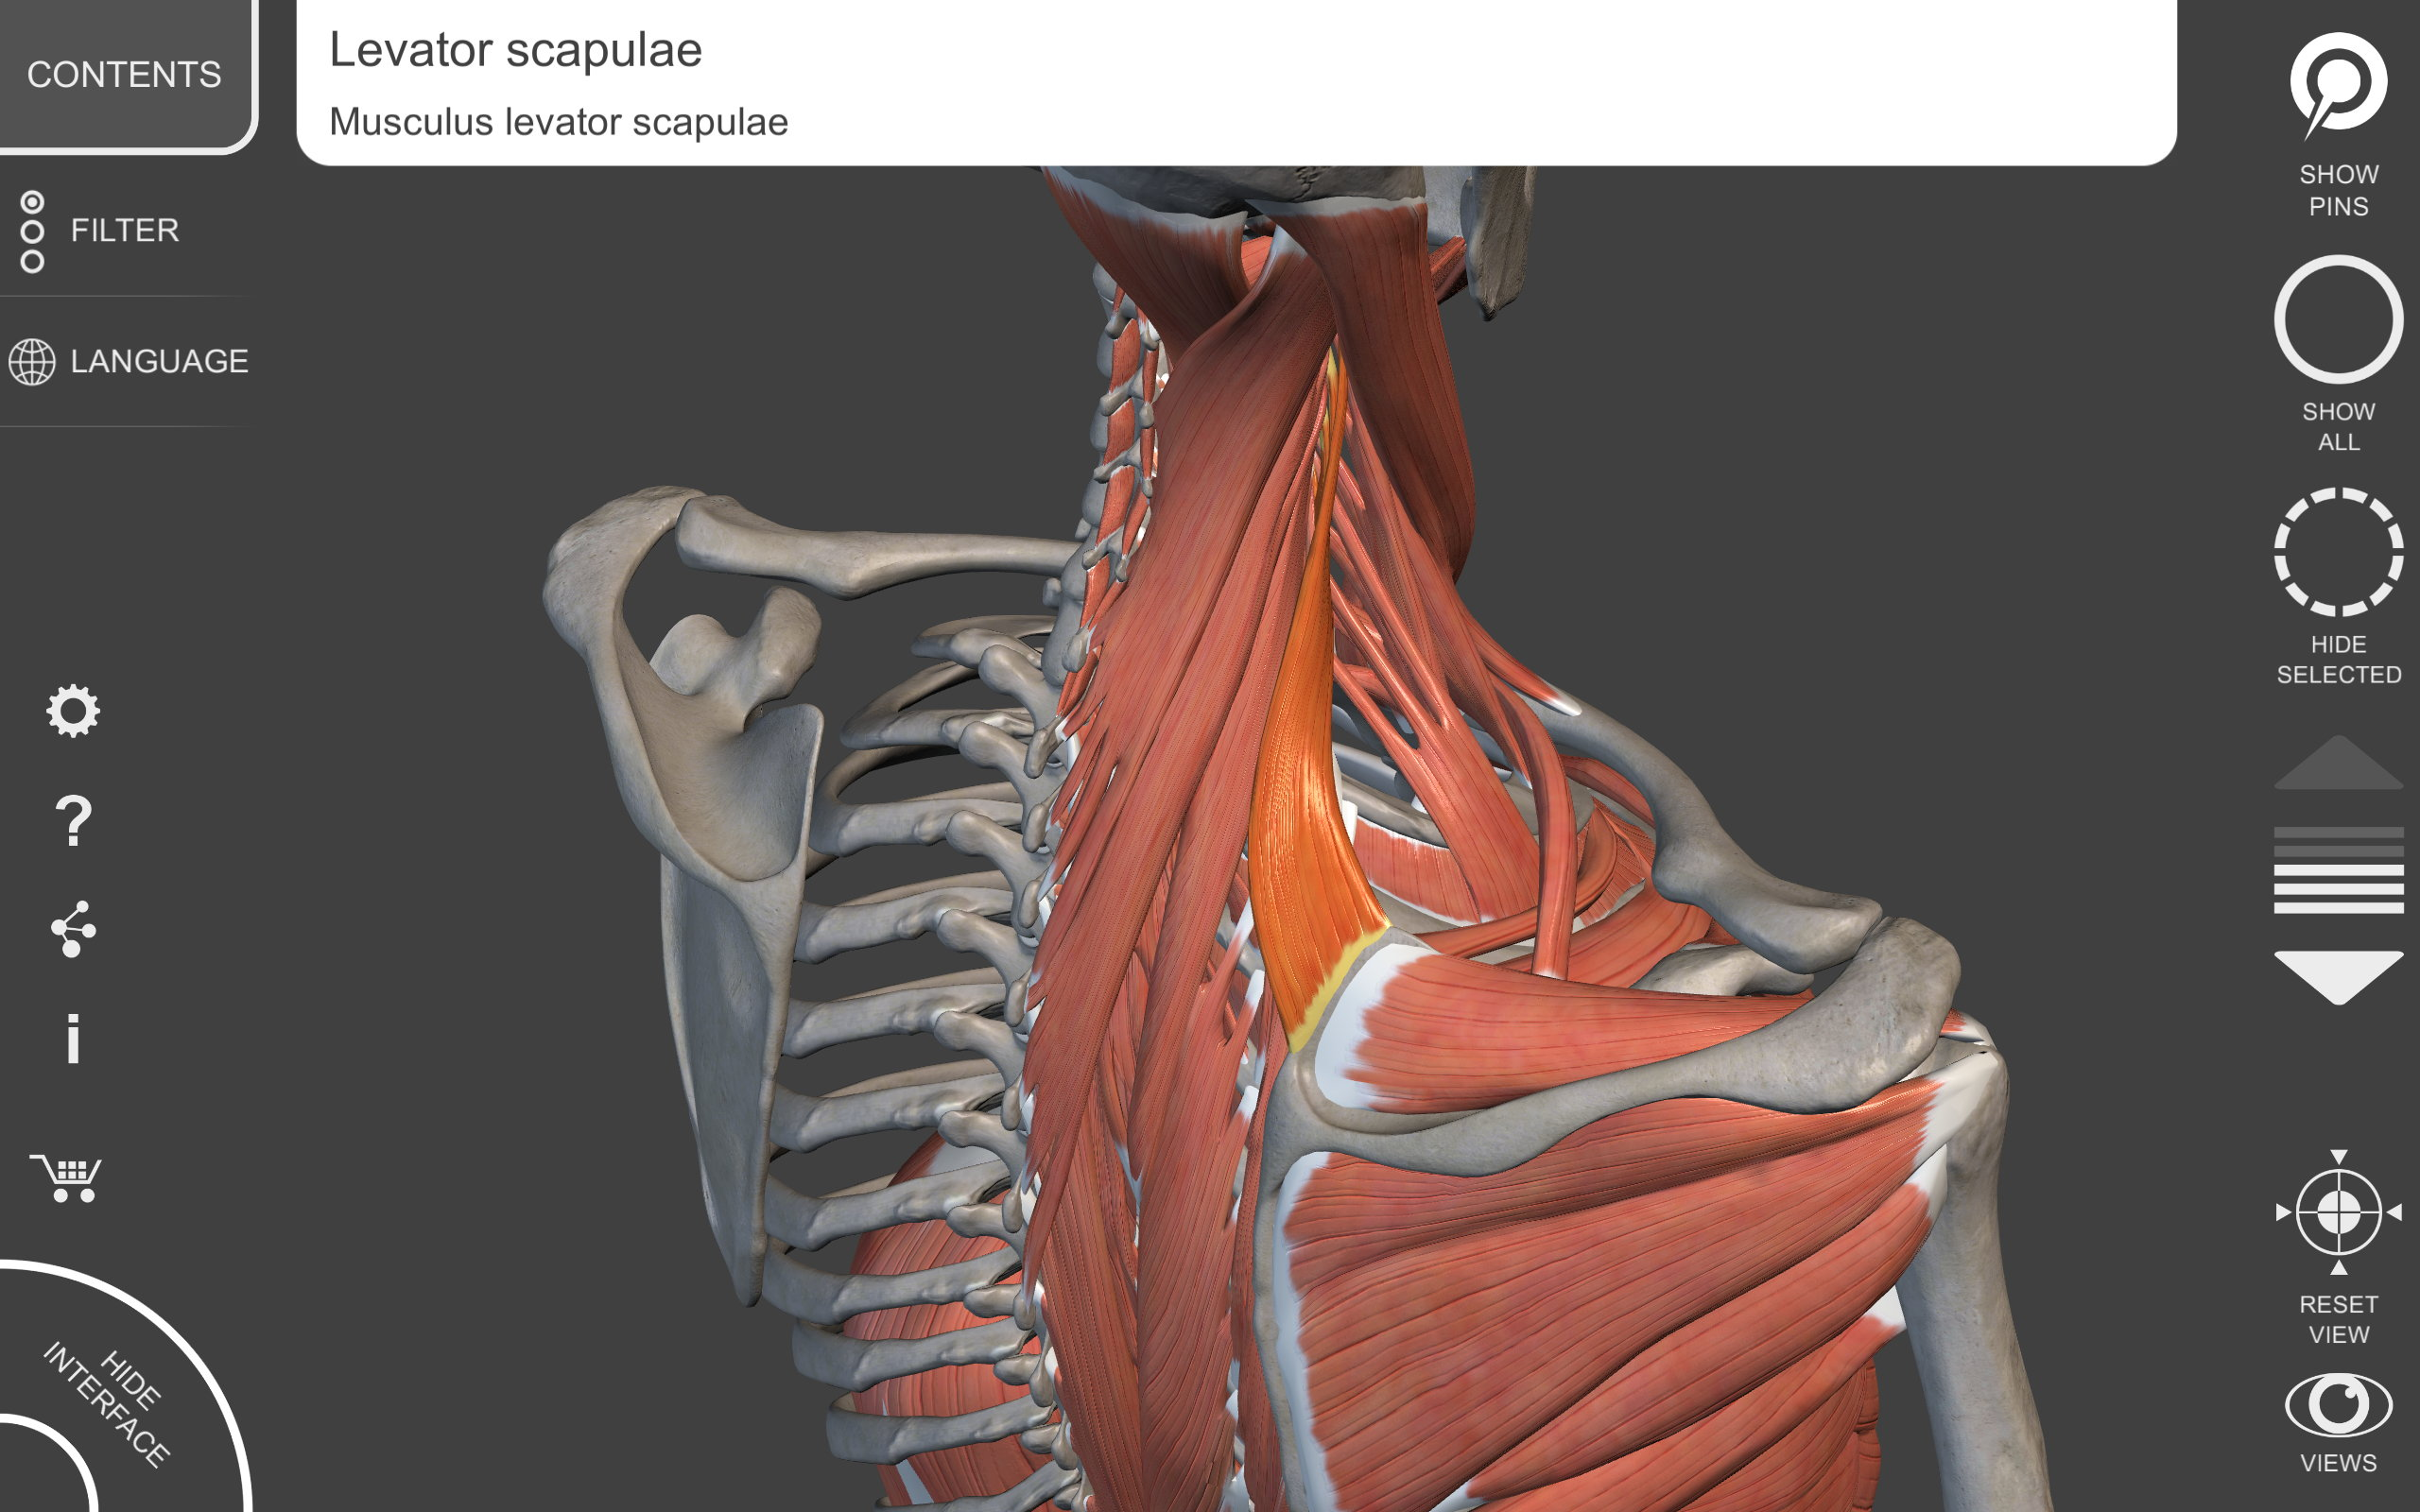 Muskelapparat - 3D Anatomie: Amazon.de: Apps für Android